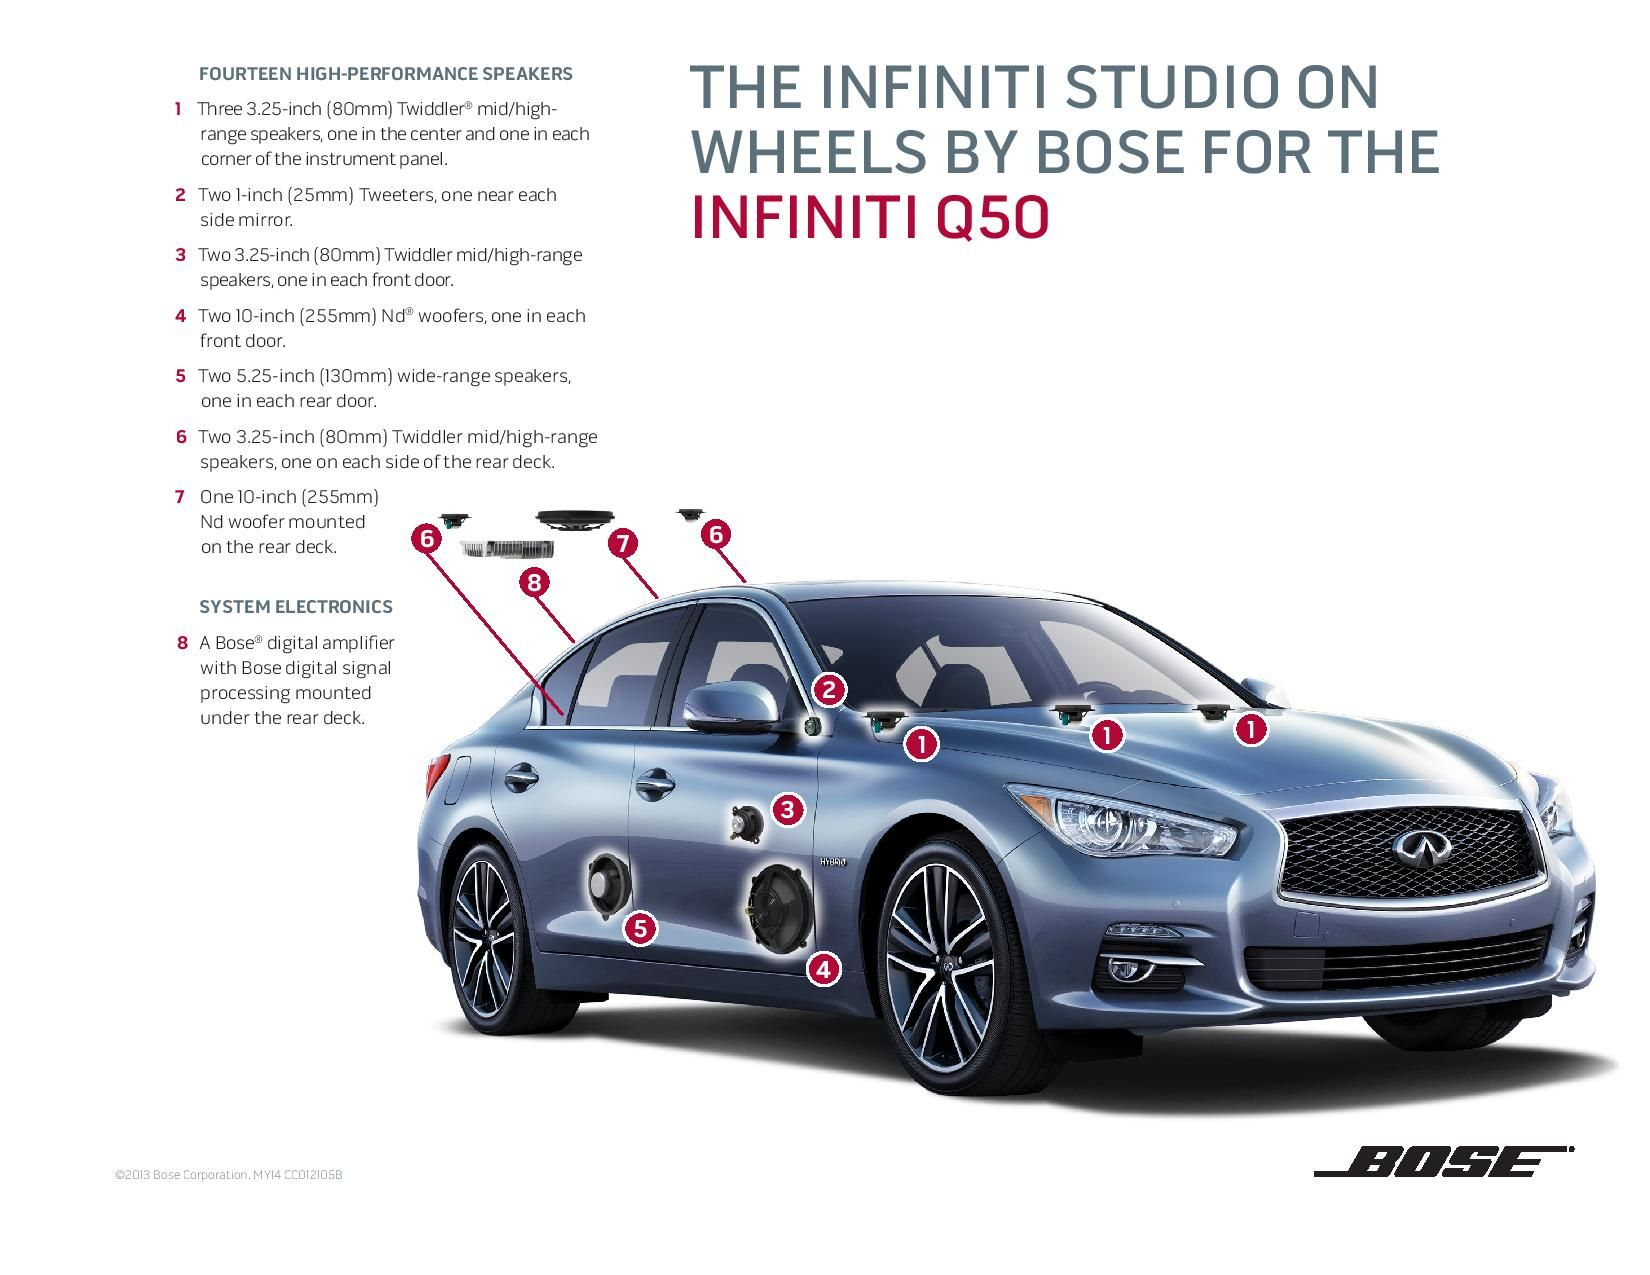 Infiniti Q50 Bose Audio System Illustration and Specifications